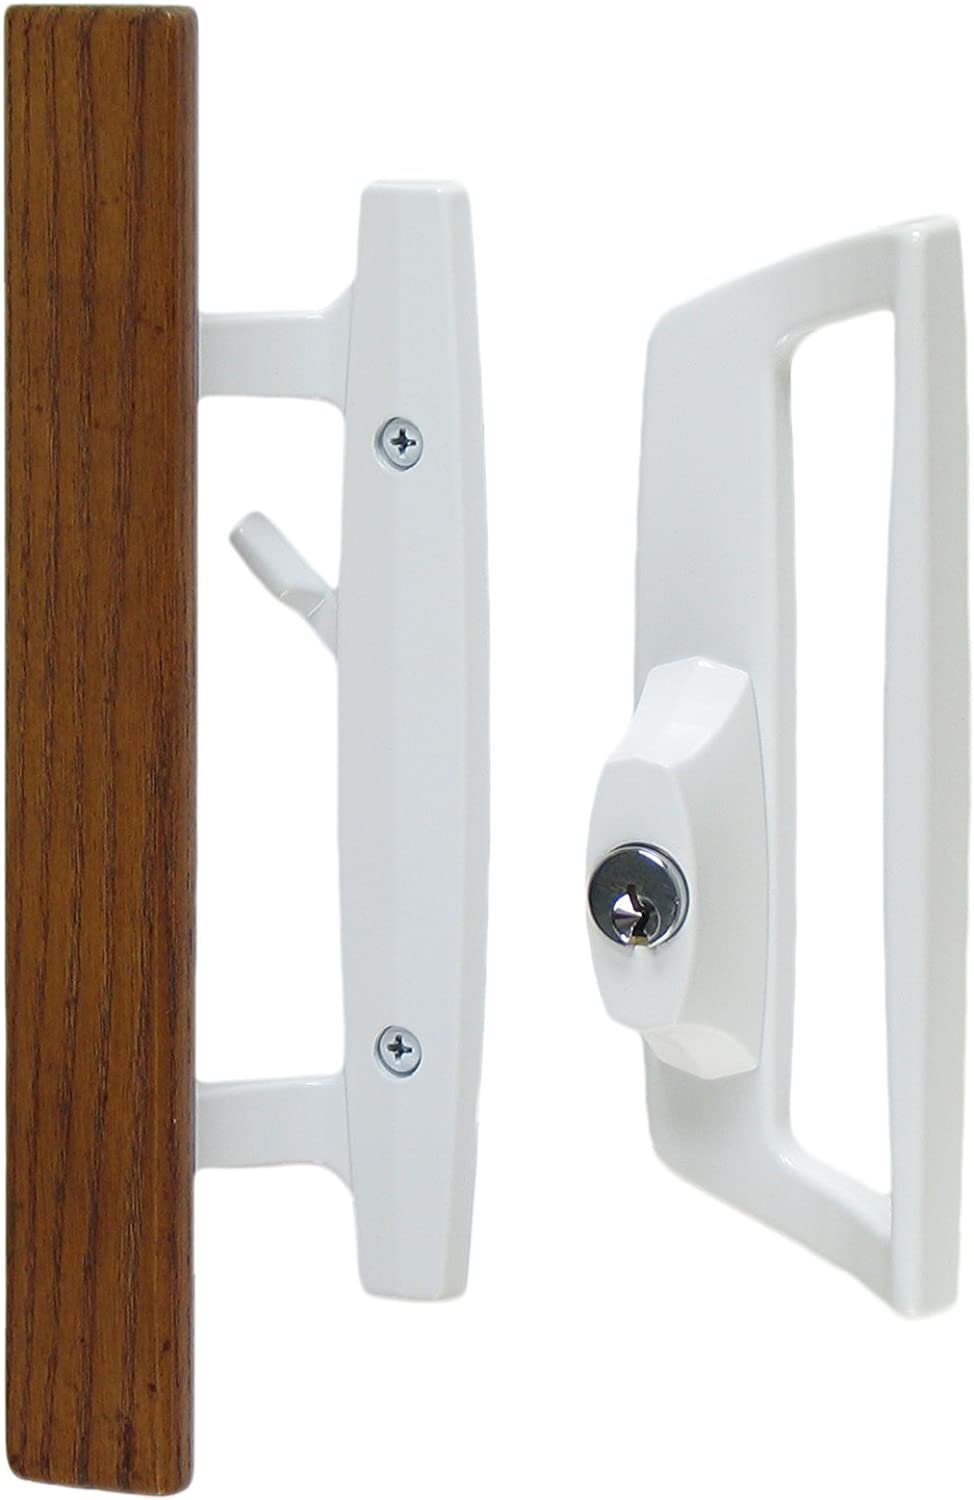 """Standard 3-15//16/"""" CTC Screw Holes Bali Nai Sliding Glass Door Handle and Mortise Lock Set with Oak Wood Pull in White Finish Includes Key Cylinder 1-3//4 Door Thickness- For RIGHT HAND Doors"""